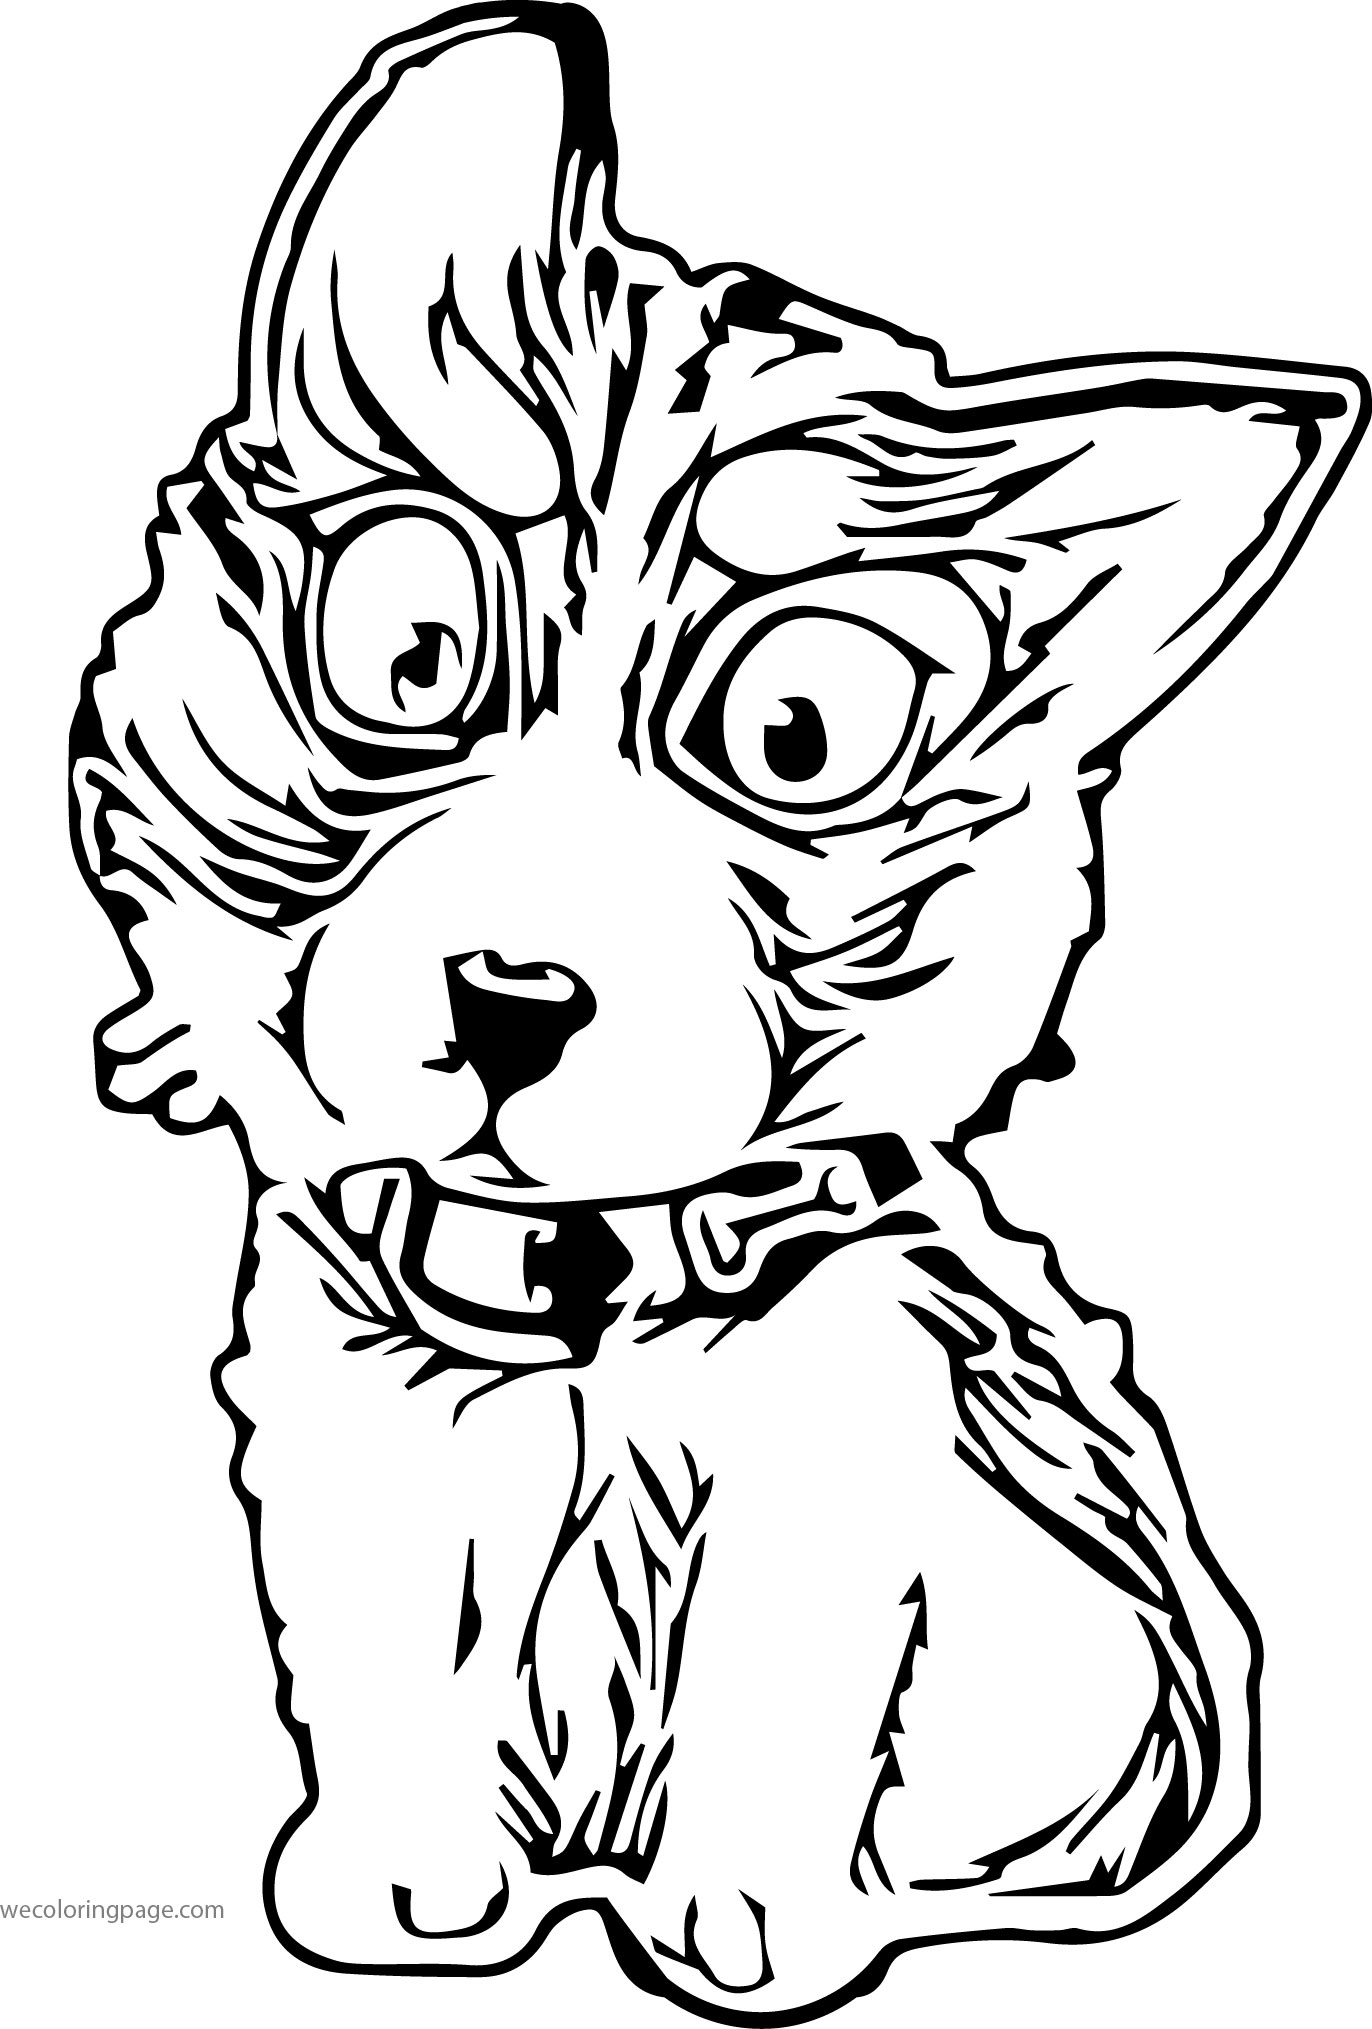 Husky 07 Coloring Page